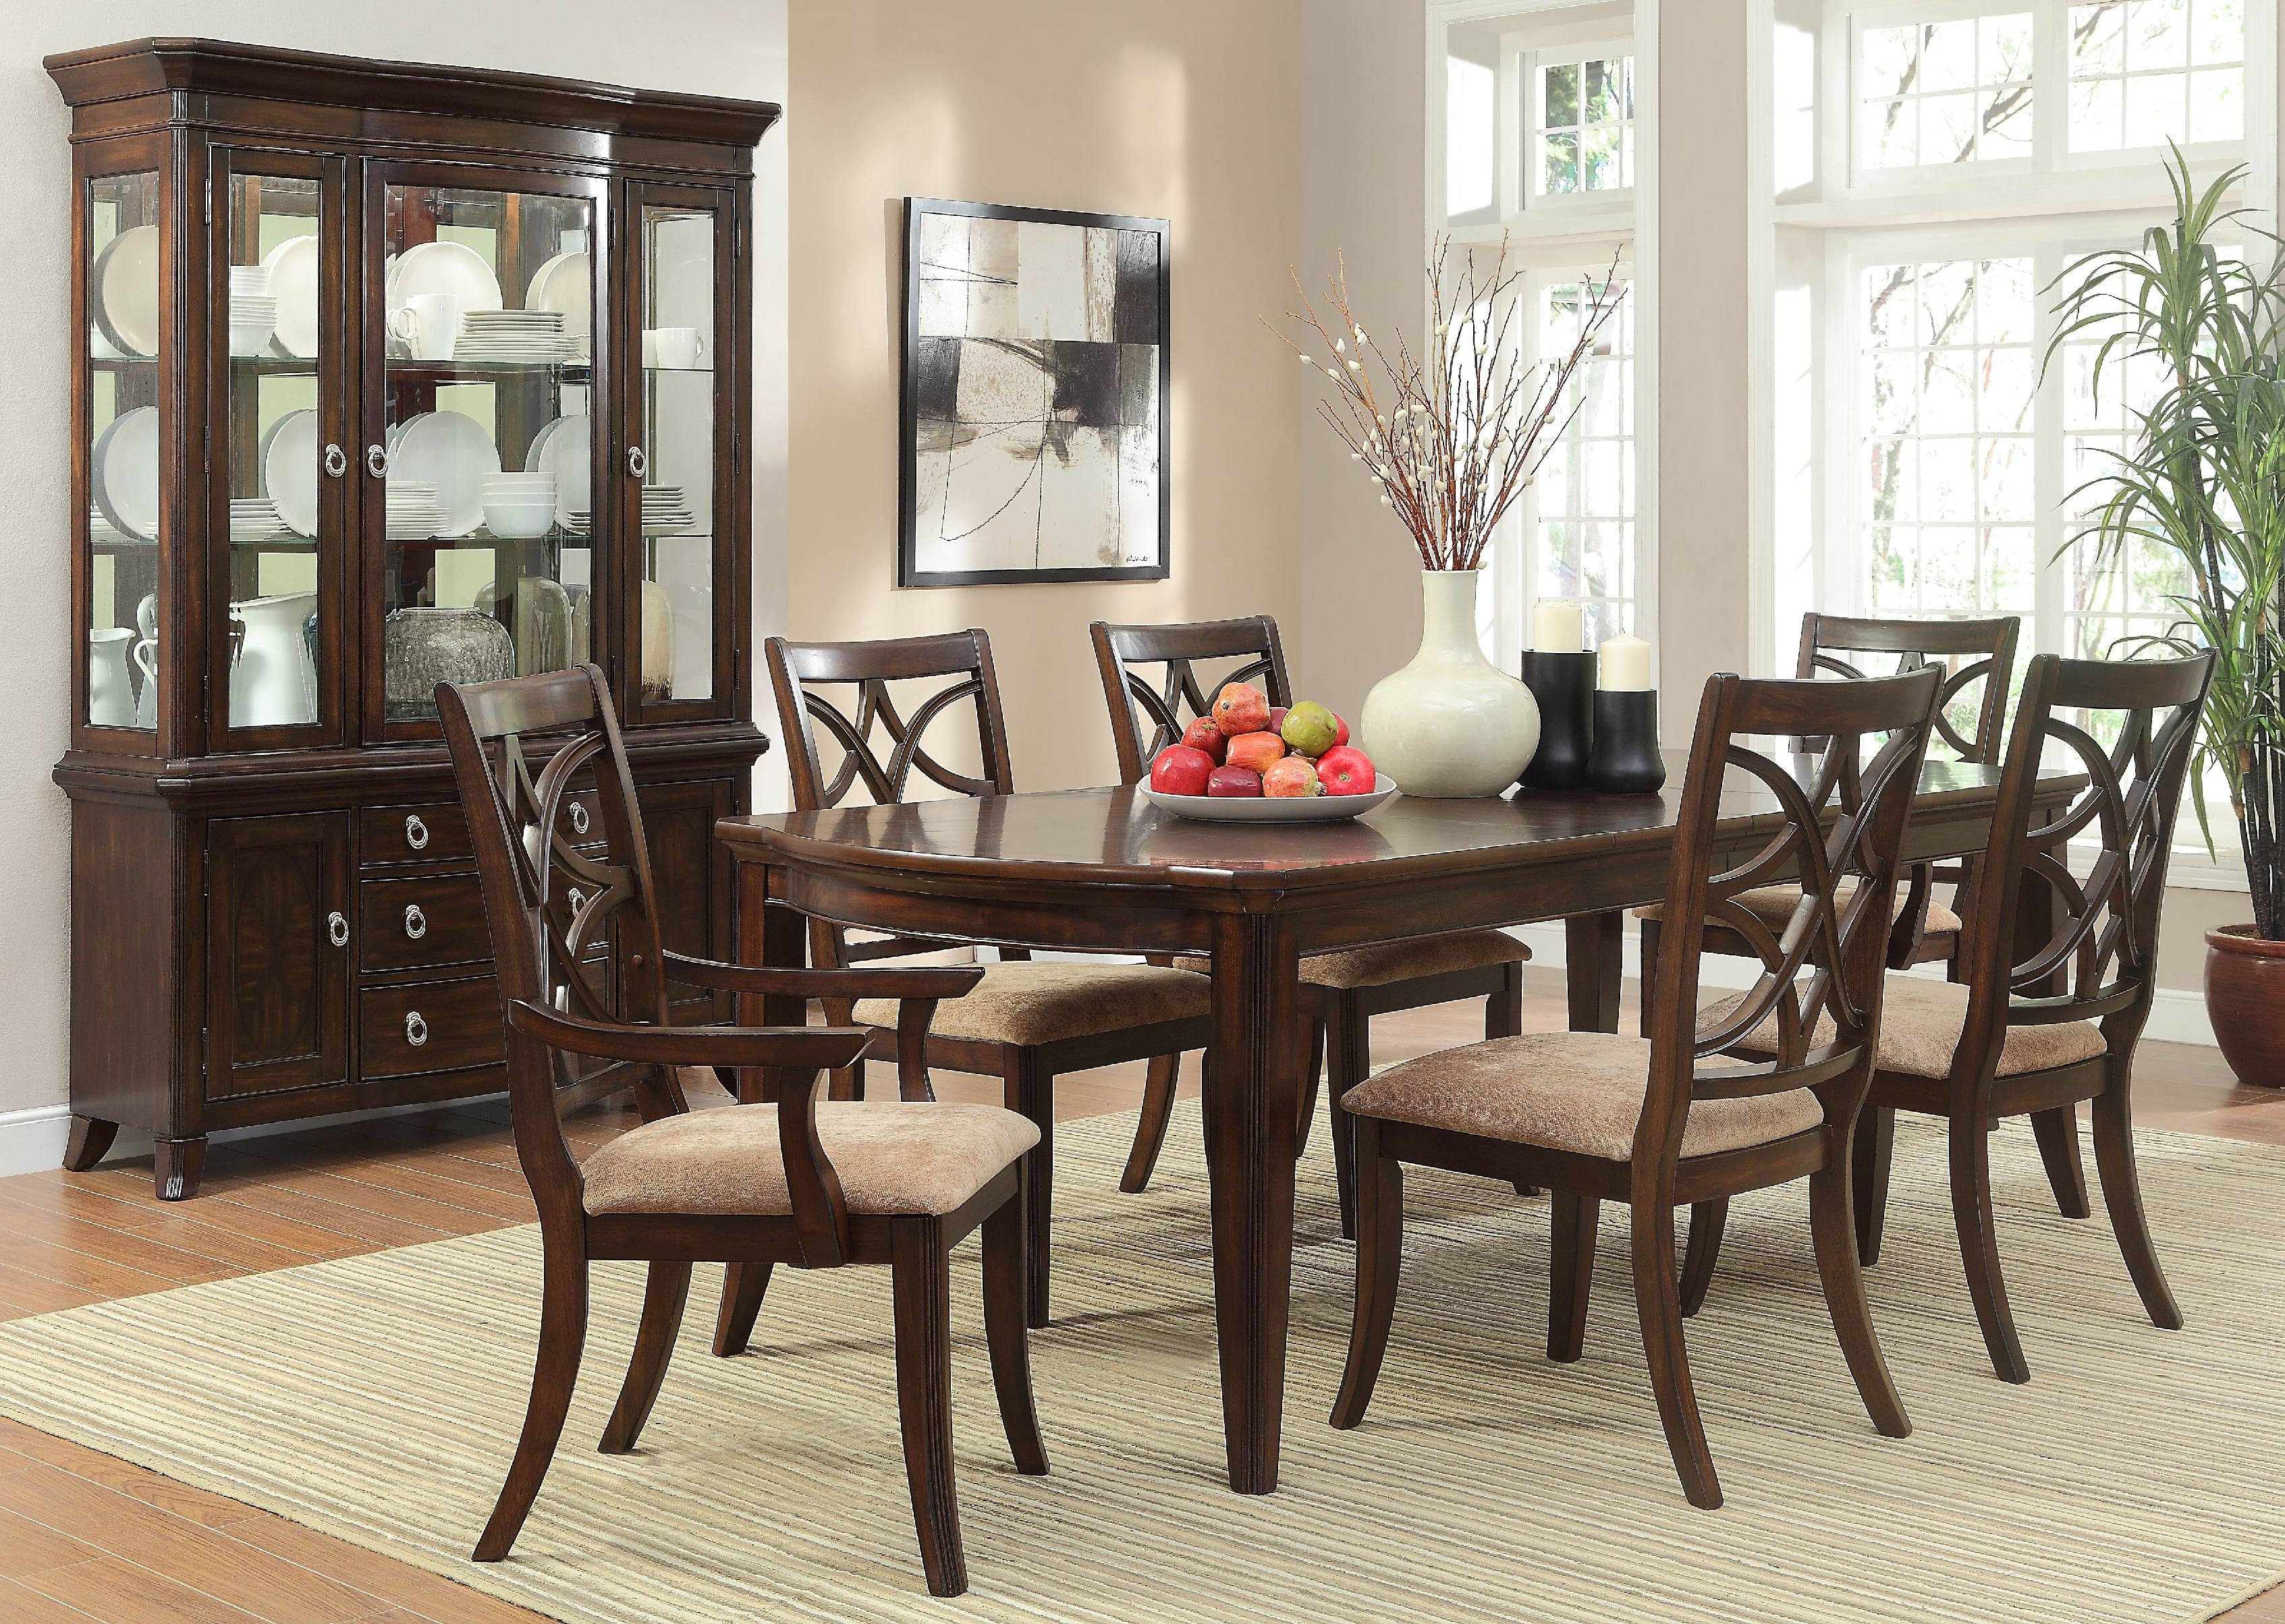 Homelegance Dining Table 2546 96